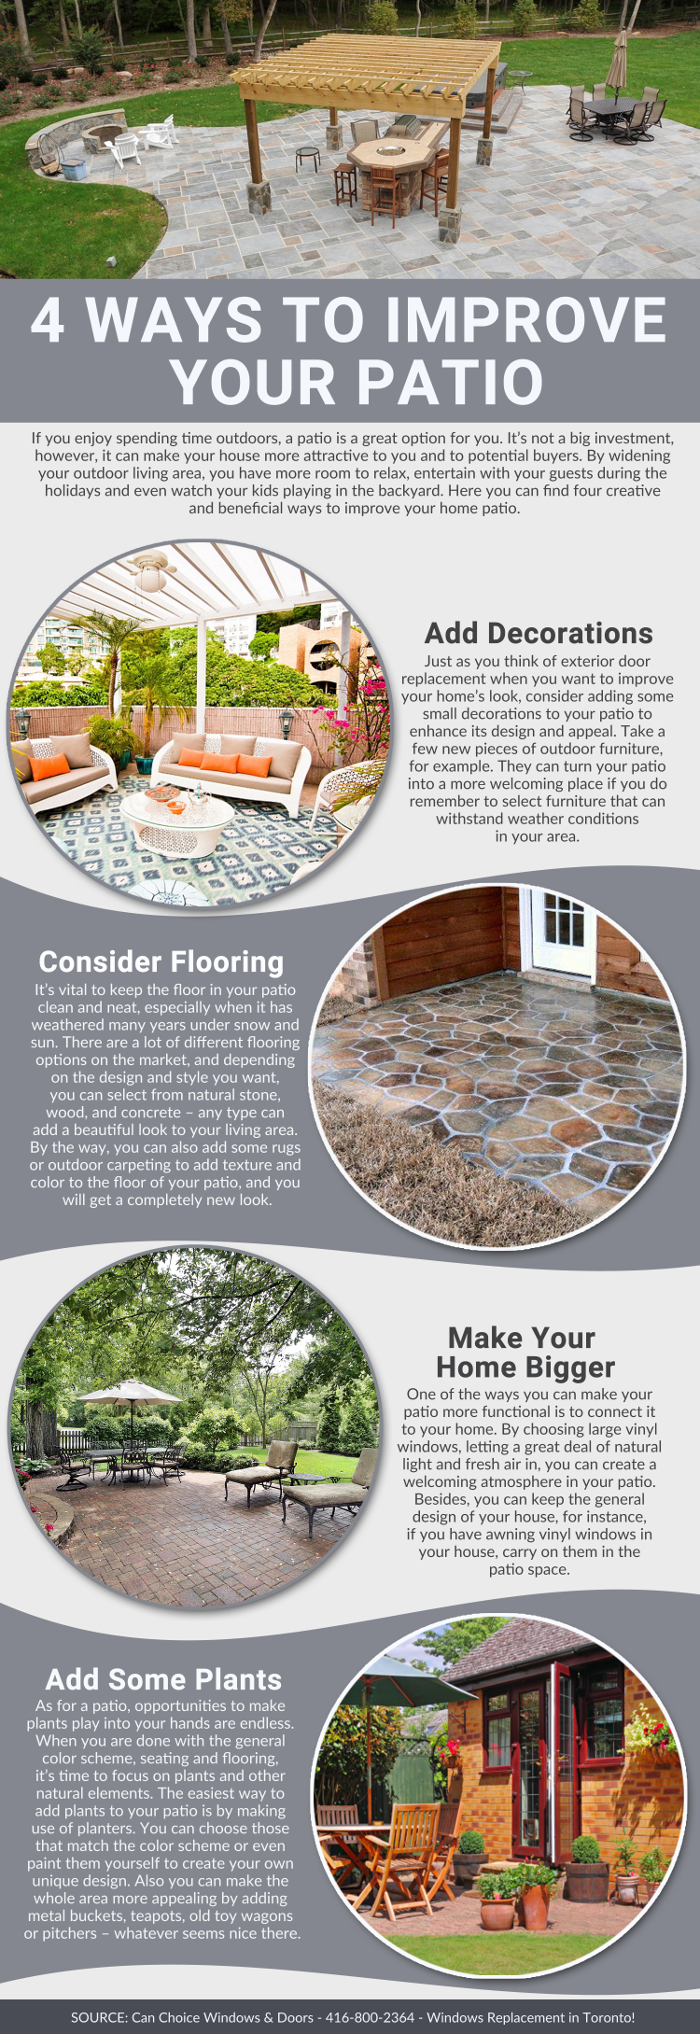 4 Ways To Improve Your Patio